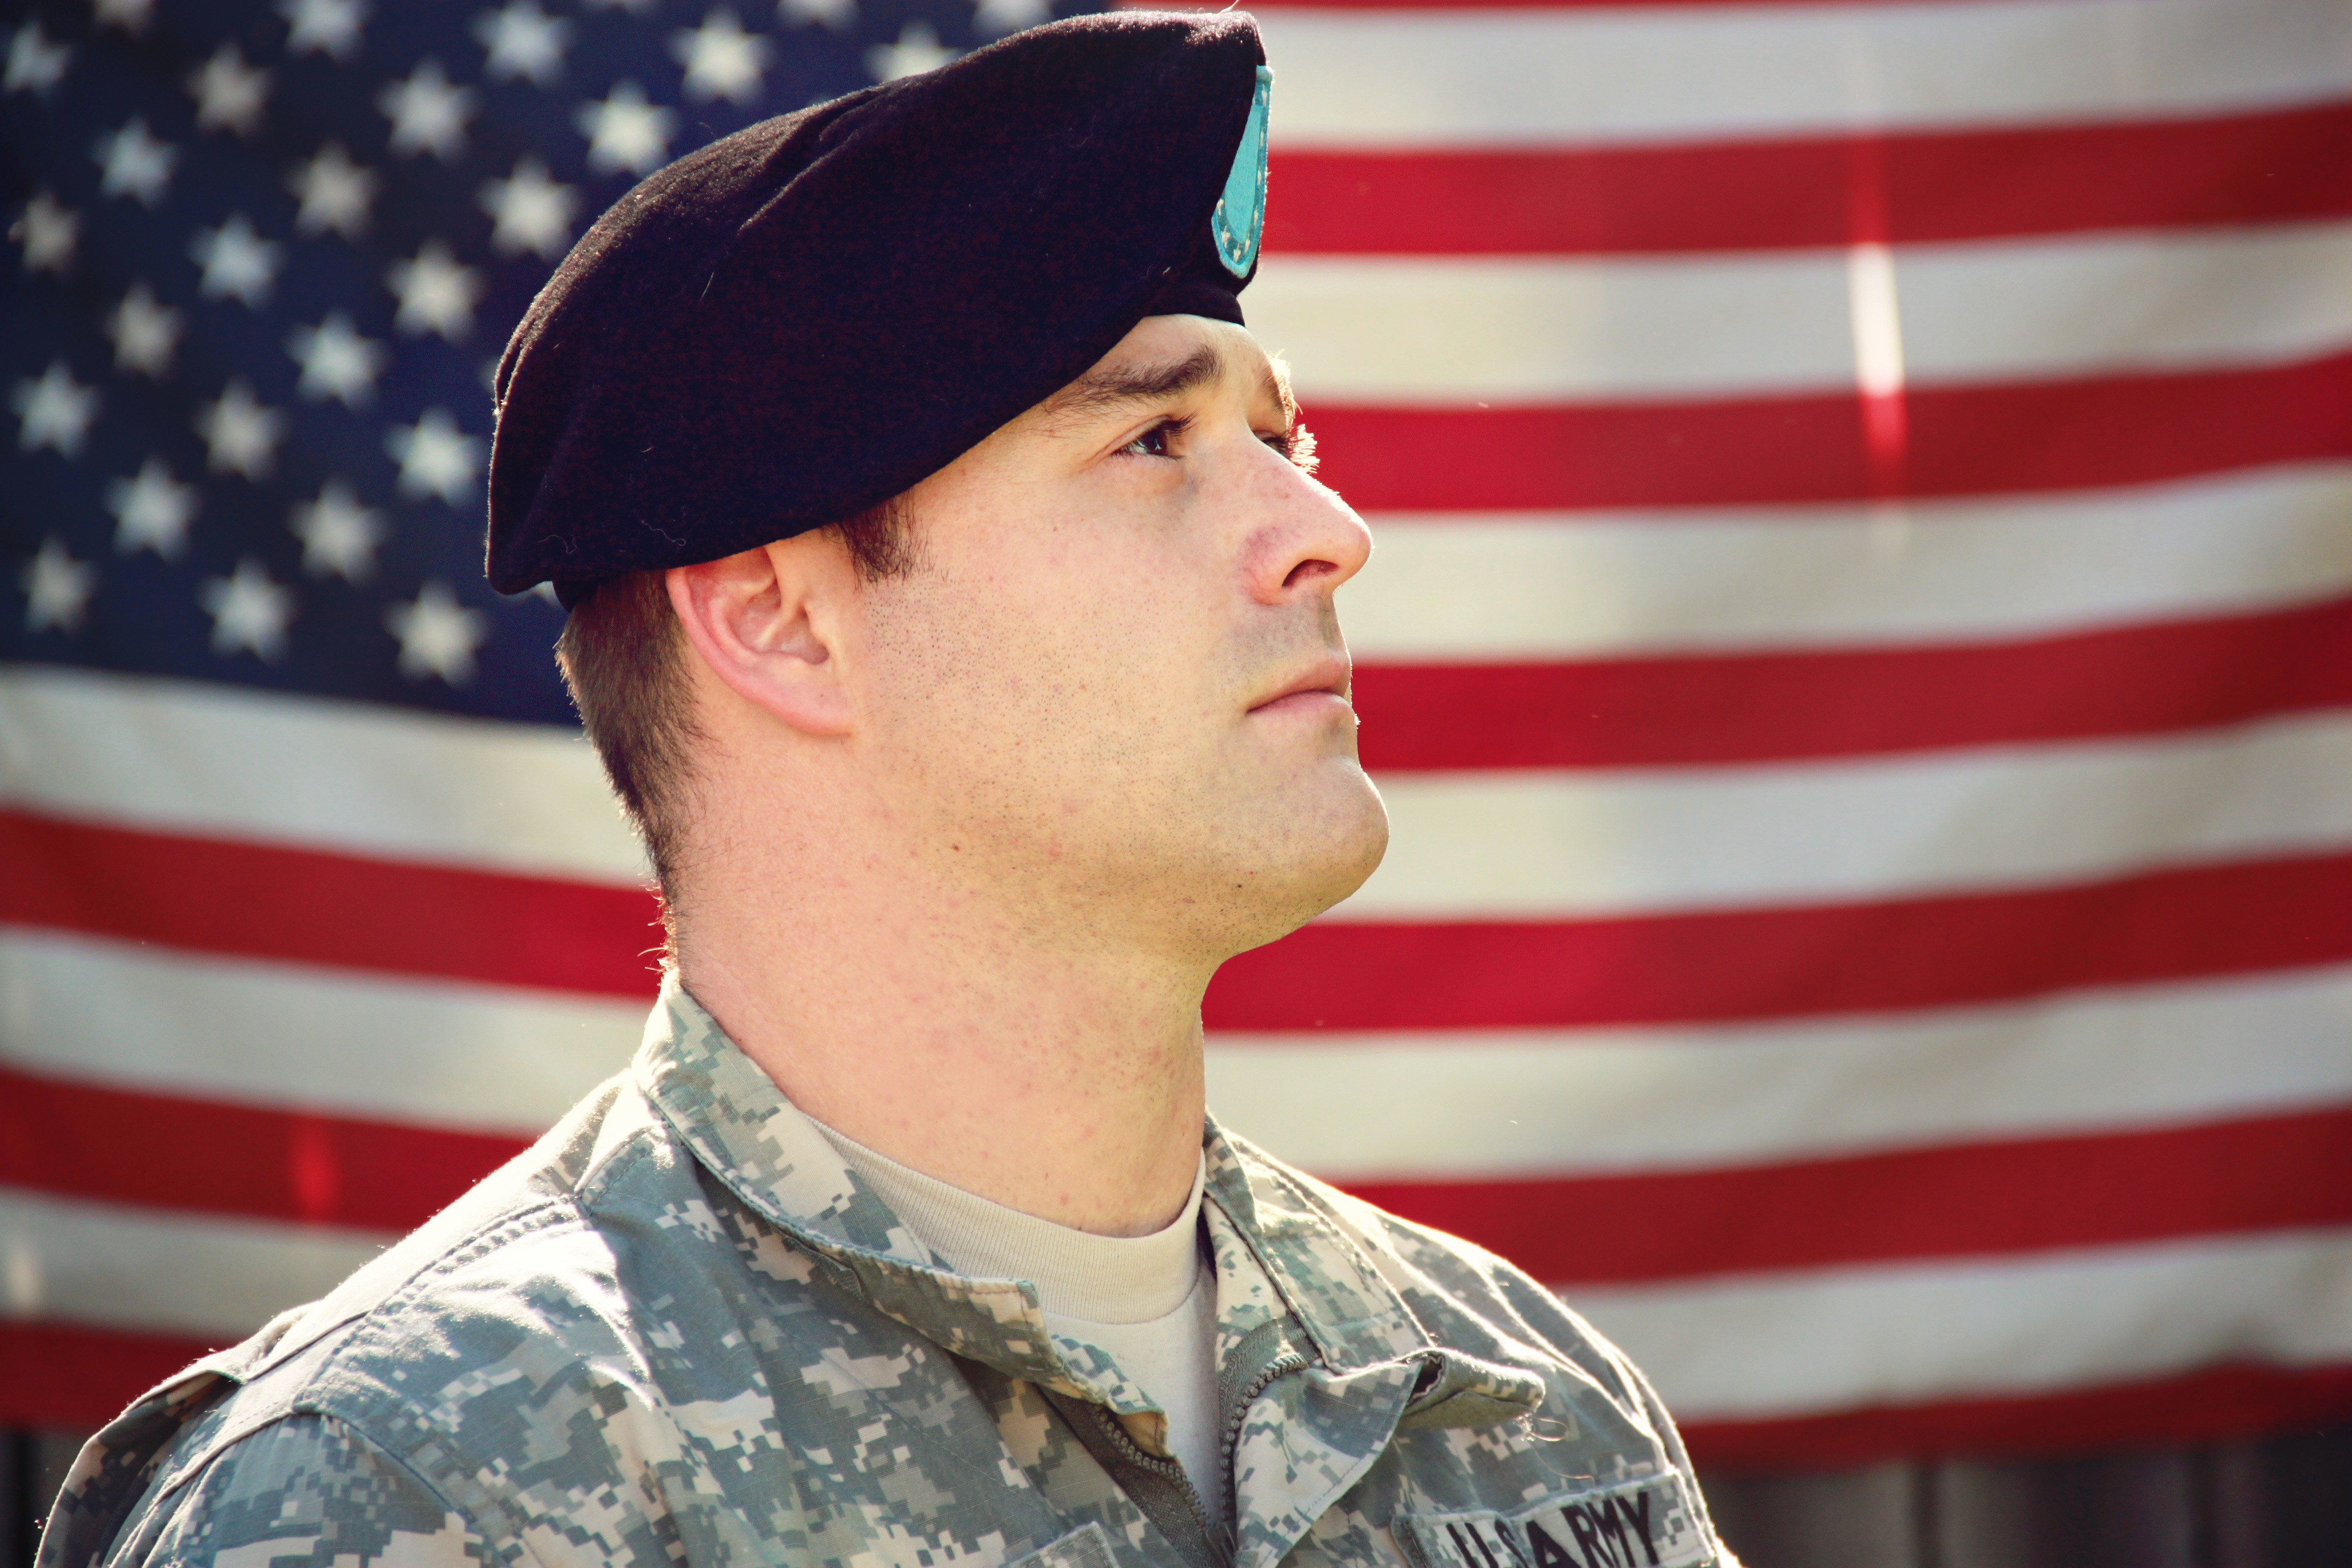 Canva - Man Wearing Combat Hat And Top Looking Up Near Flag Of America